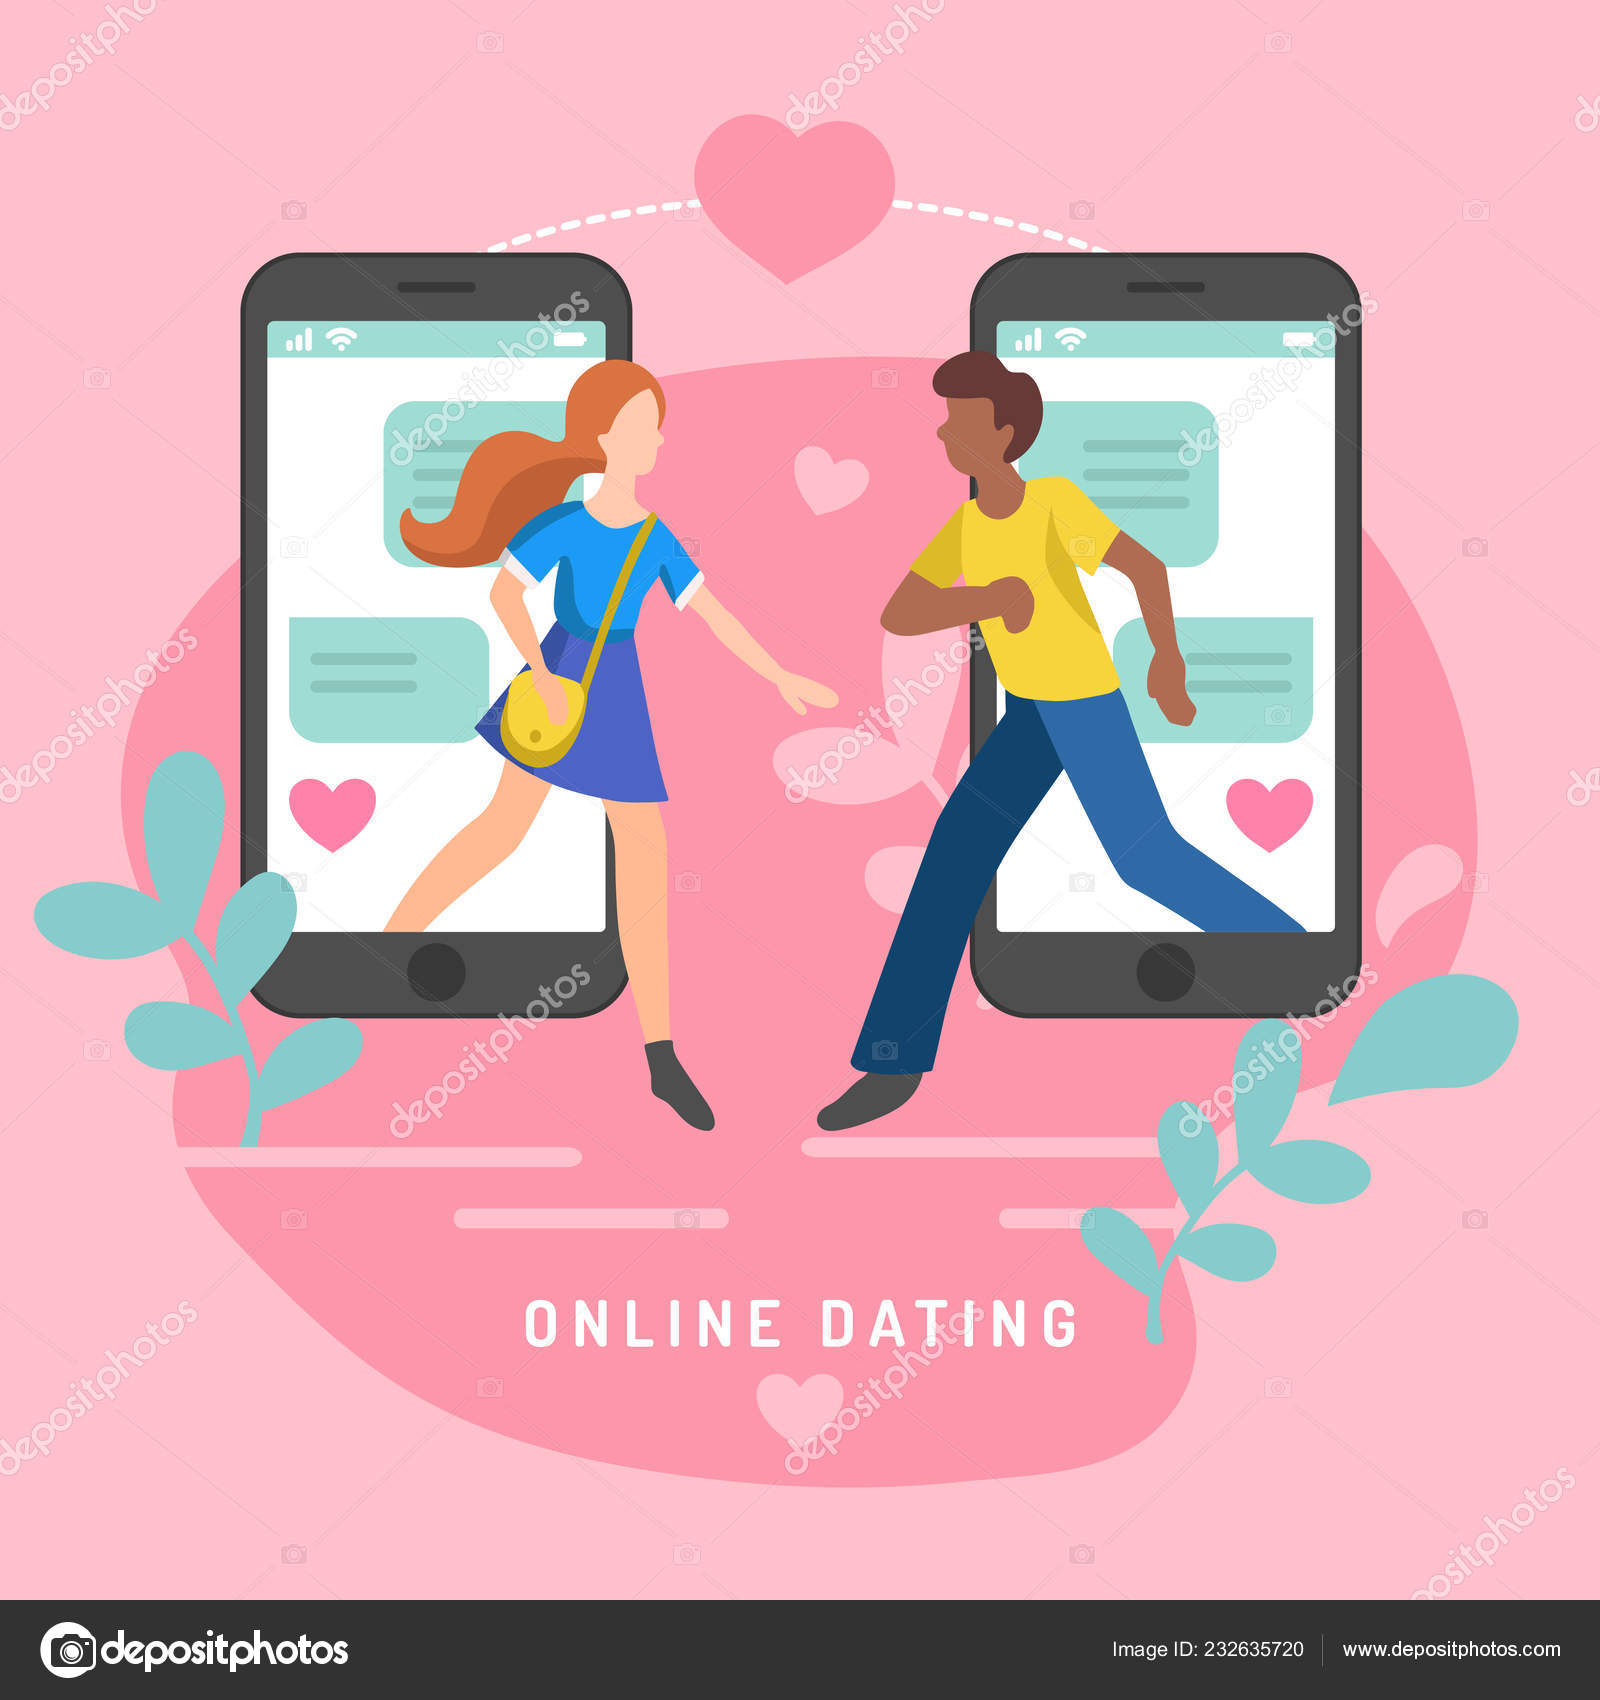 È online dating buona